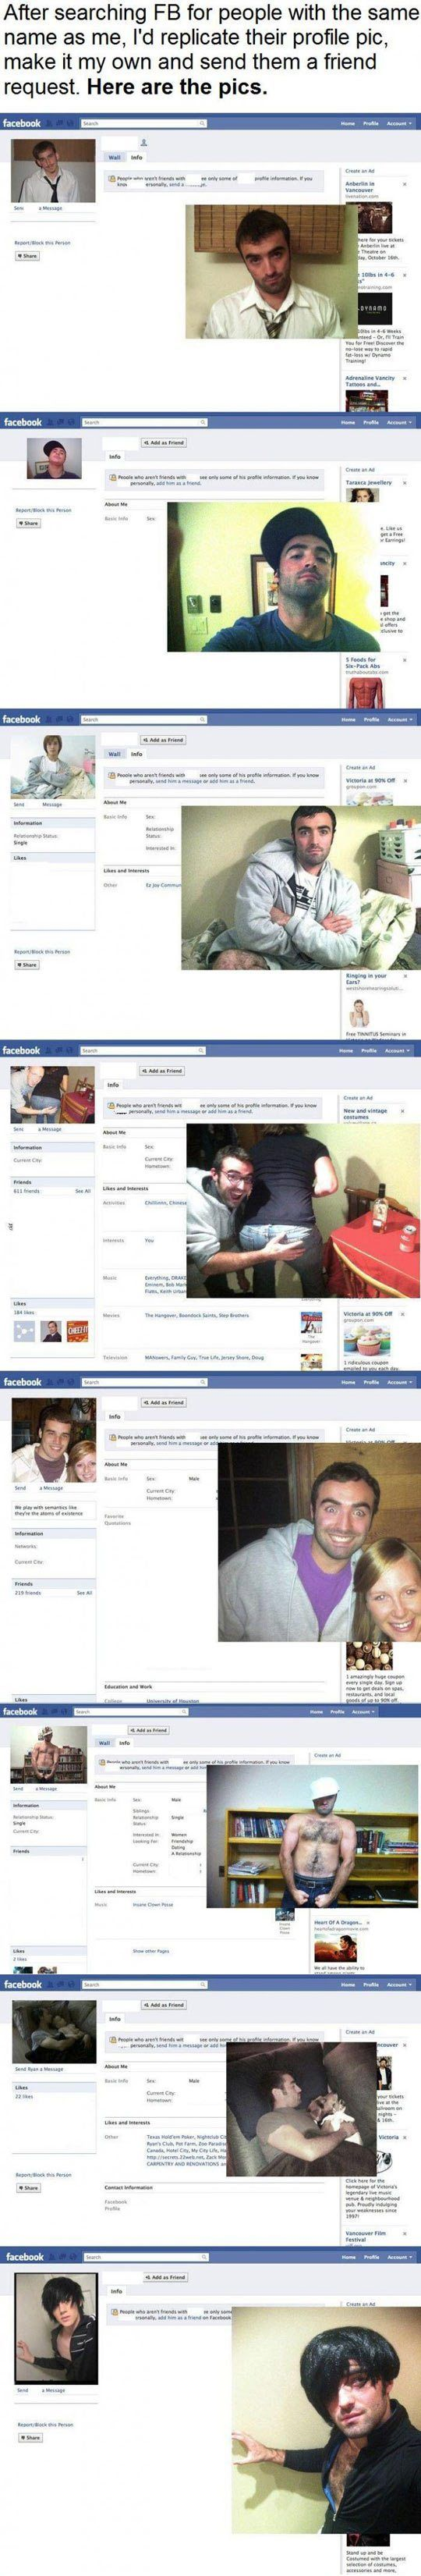 He is The Master of #Facebook #Trolling! http://ibeebz.com